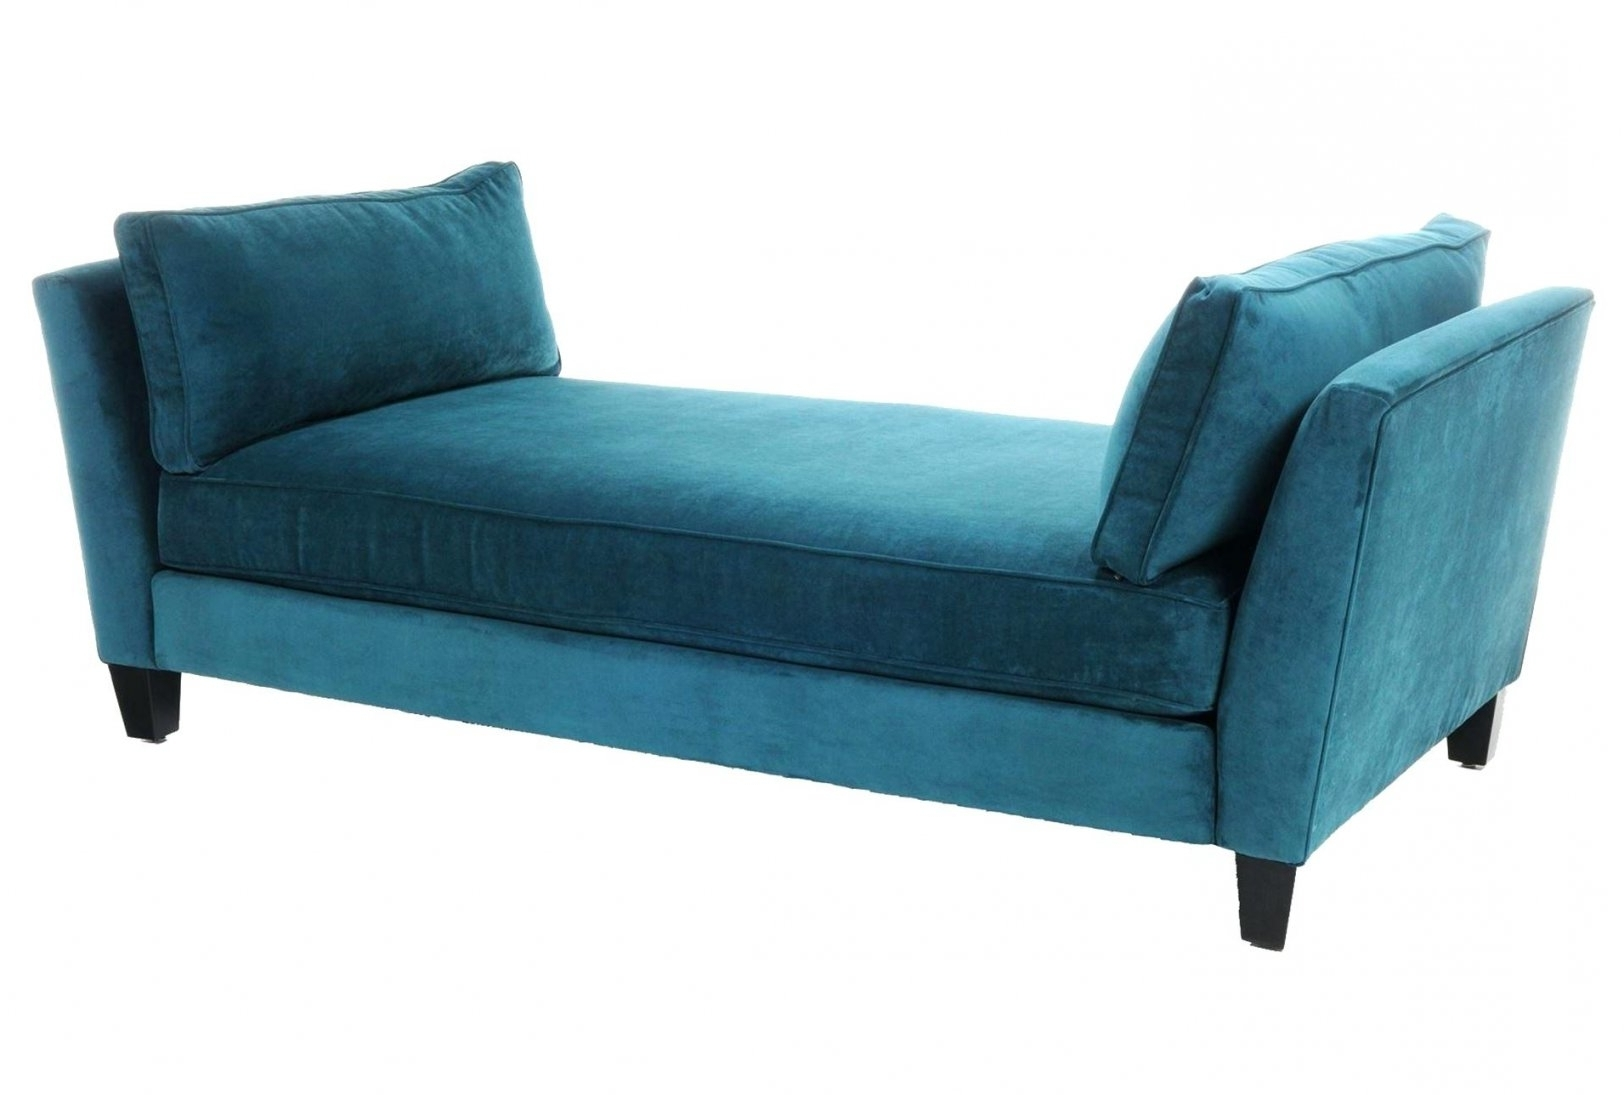 Daybed Chaises In Most Current Daybed Chaise Lounge Sofa (View 5 of 15)